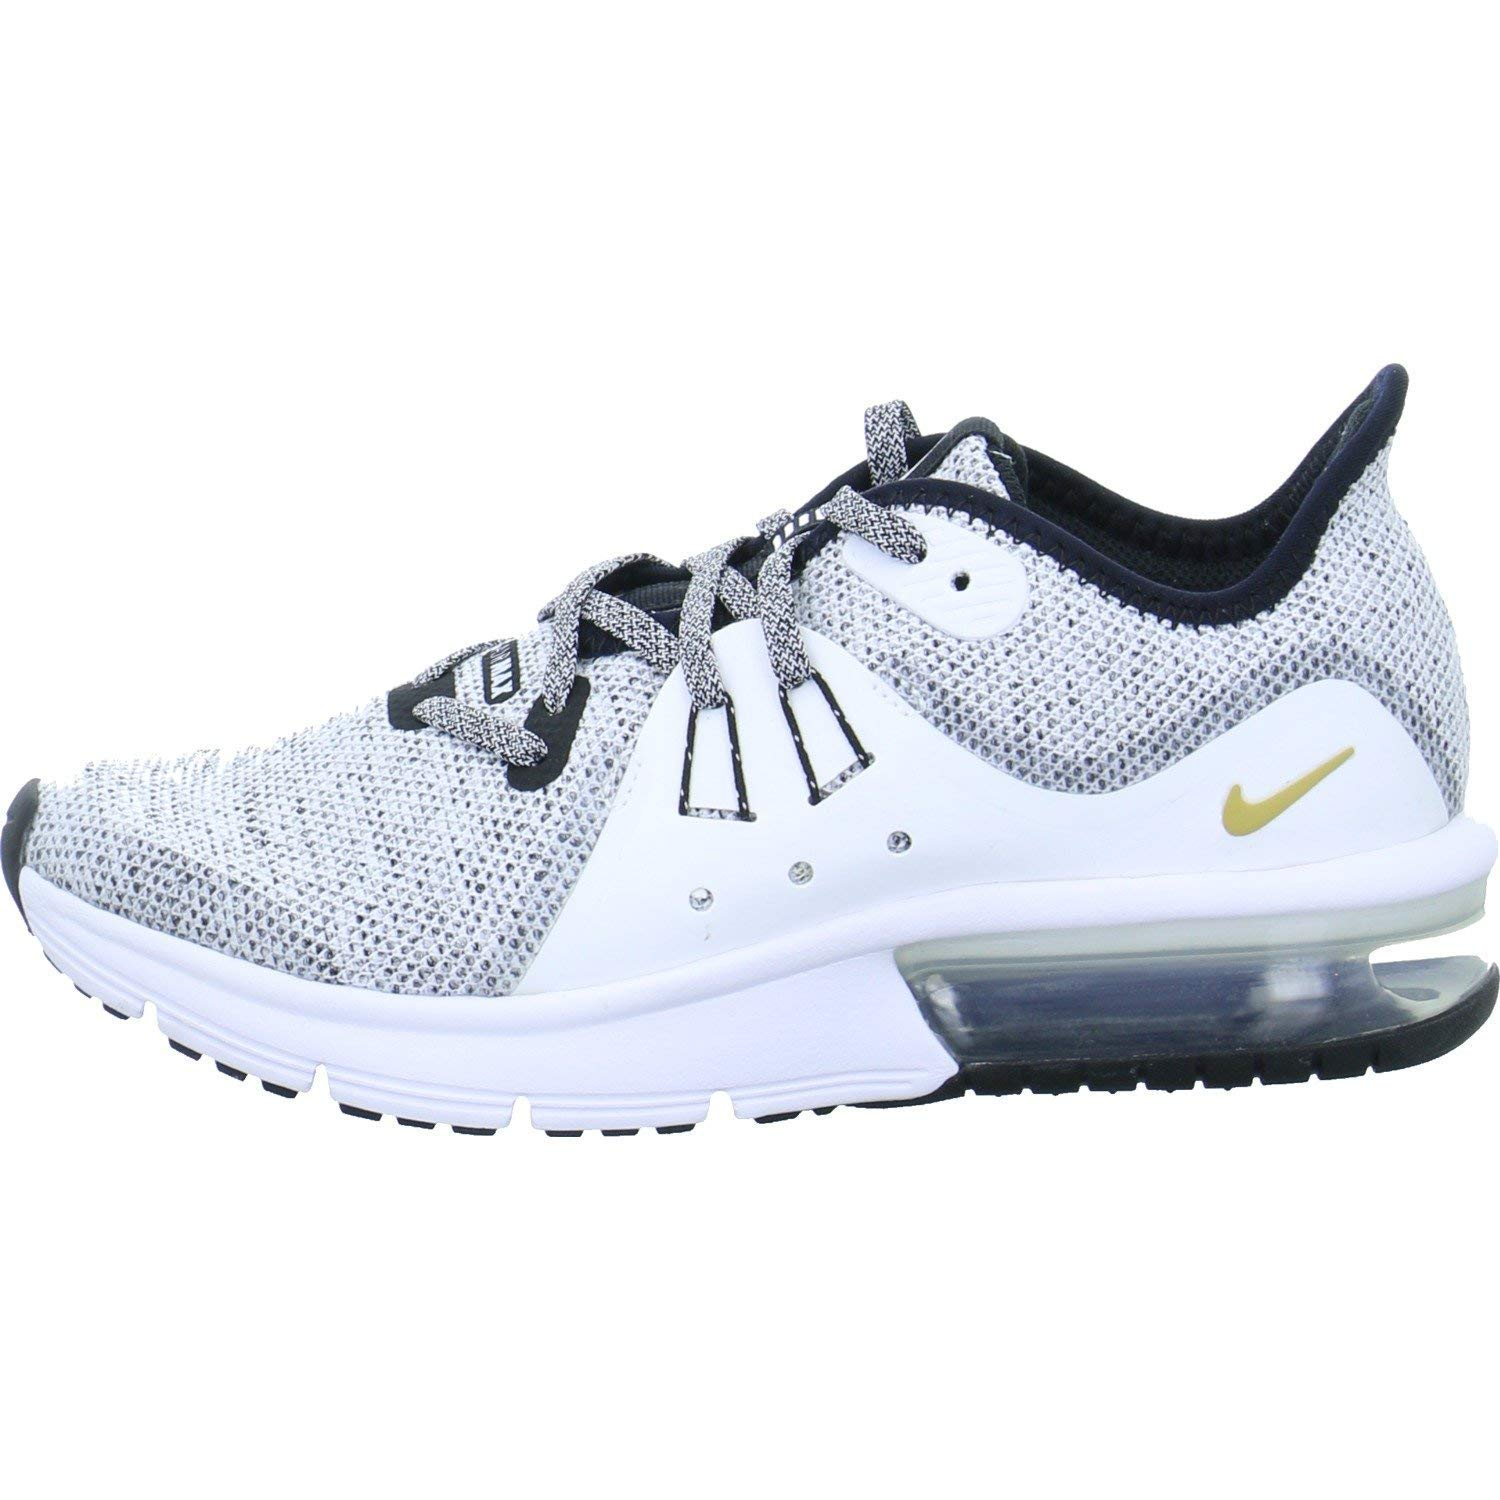 77be02f6c0 Kids Nike Girls Air Max Sequent 3 (ps) Low Top Lace Up, Black, Size 13.5 C  Boys